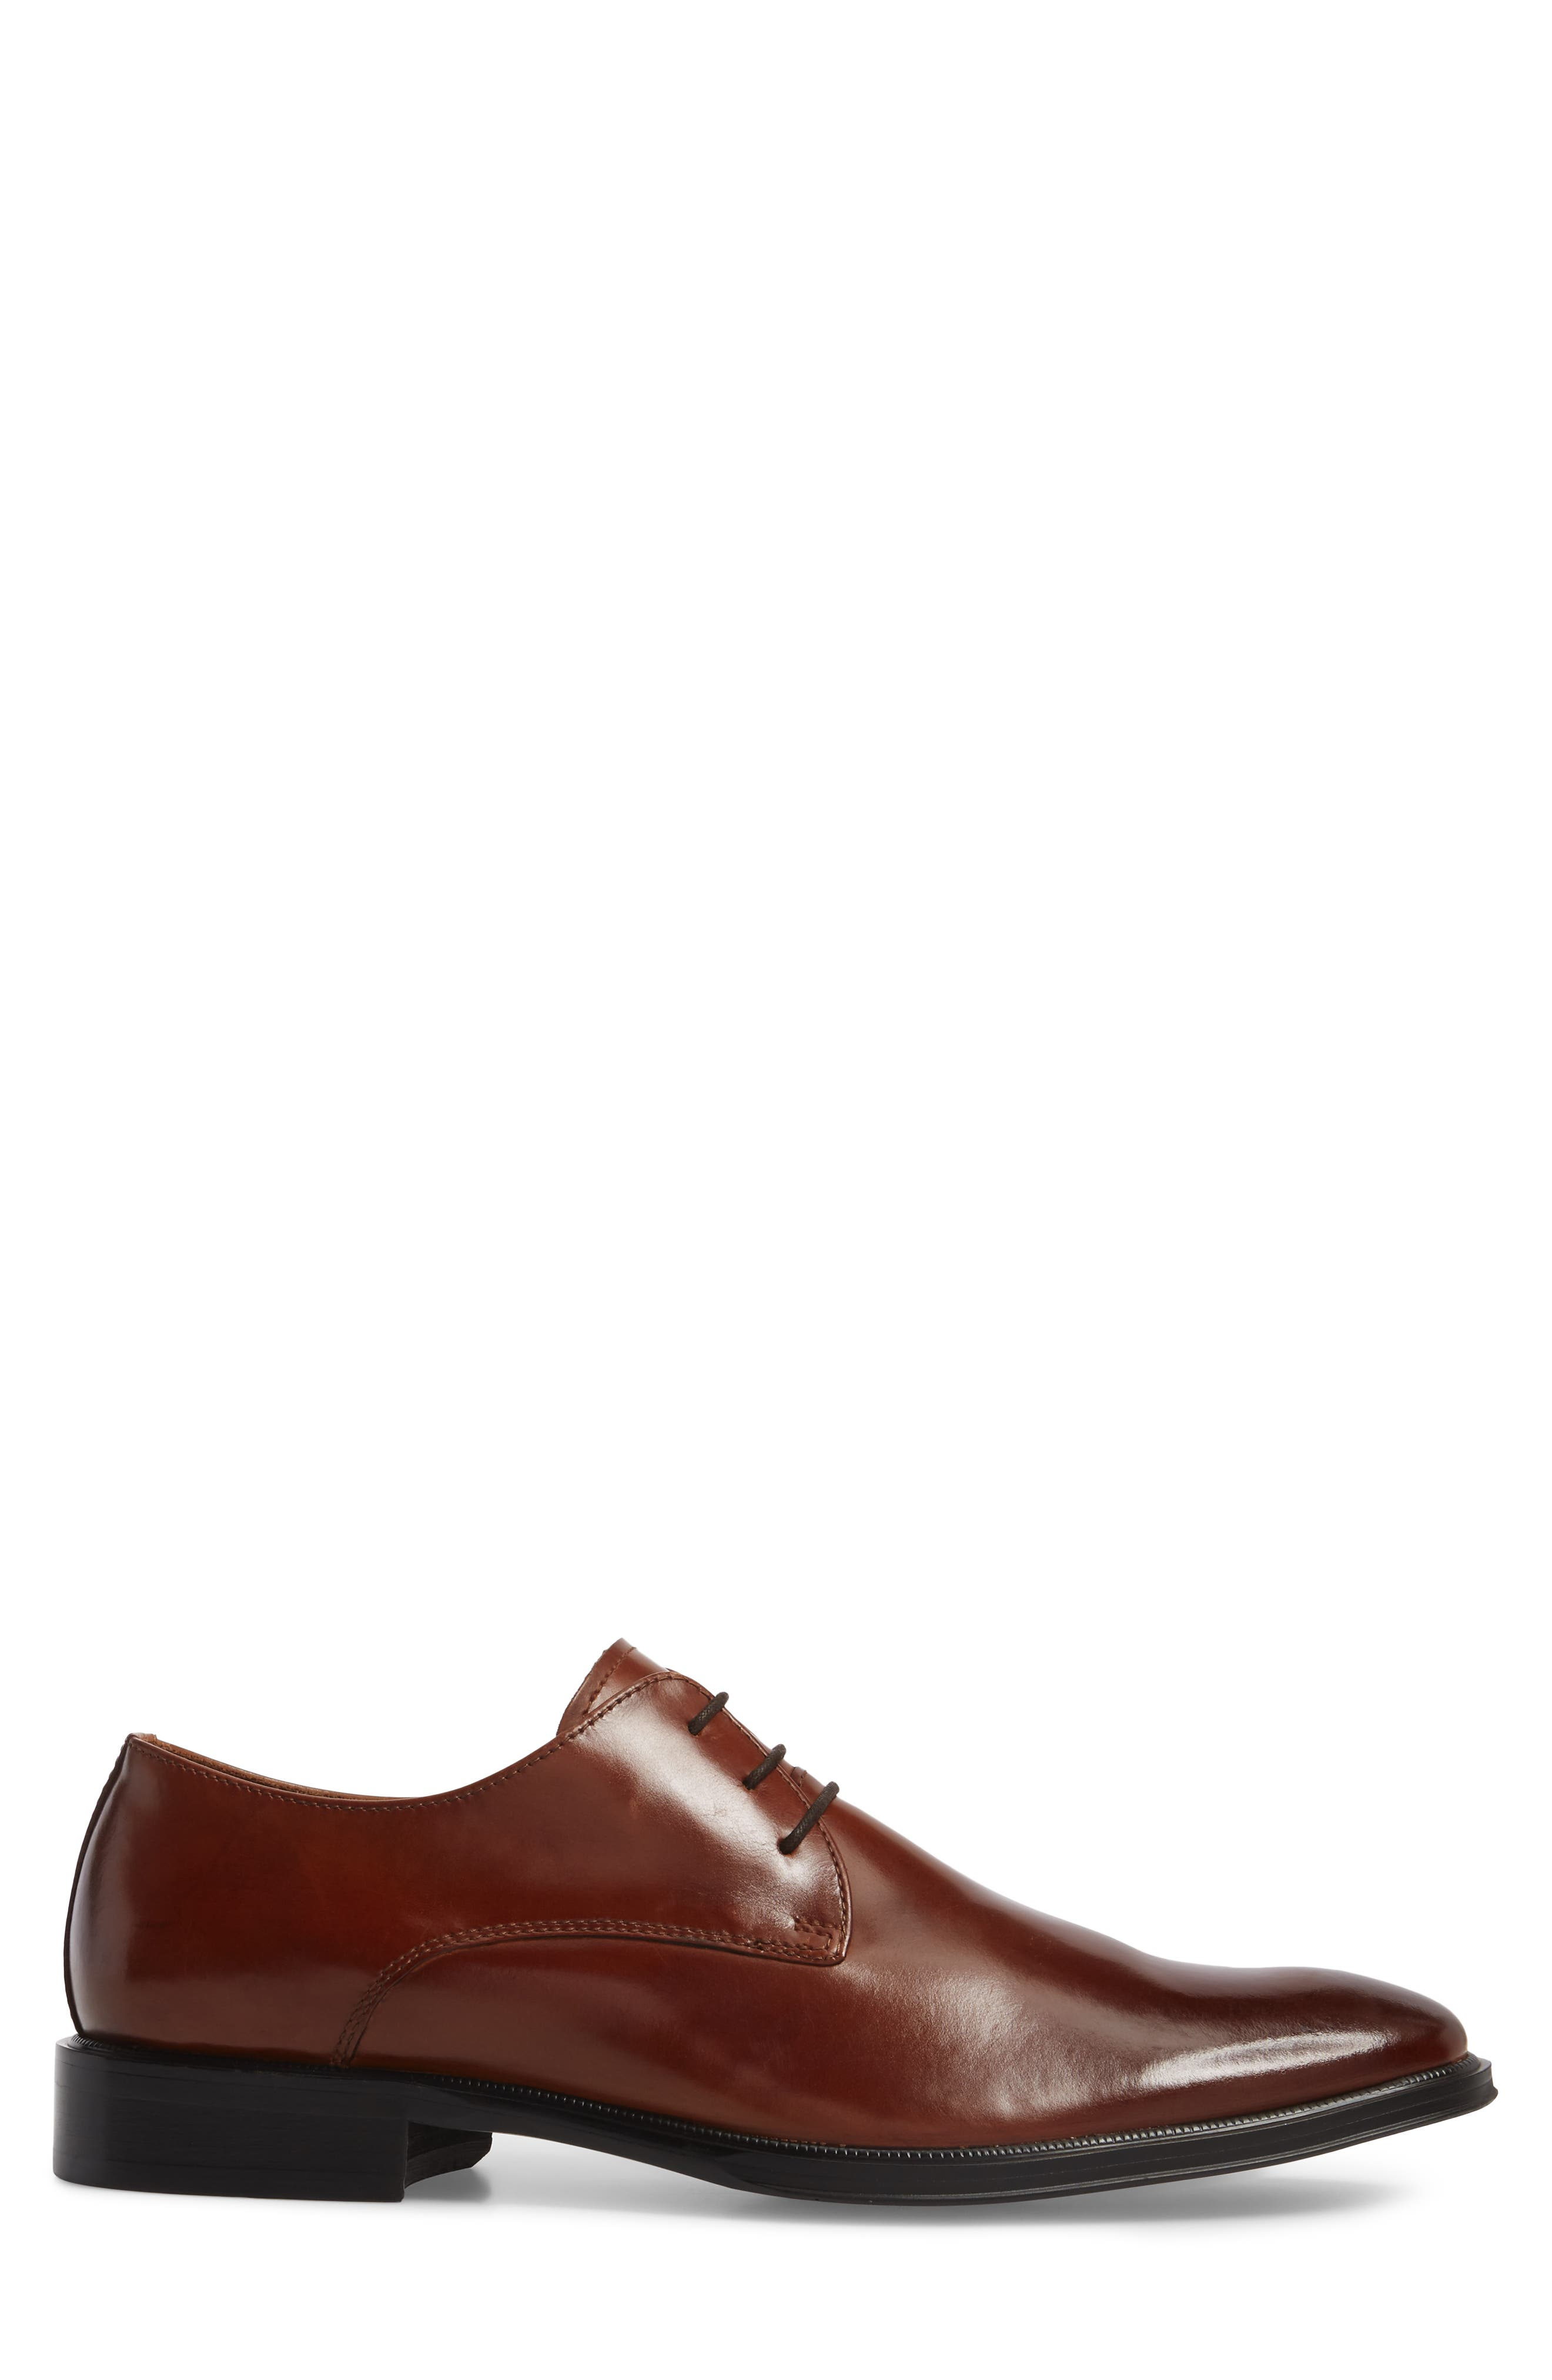 Kenneth Cole Tully Plain Toe Derby,                             Alternate thumbnail 3, color,                             COGNAC LEATHER